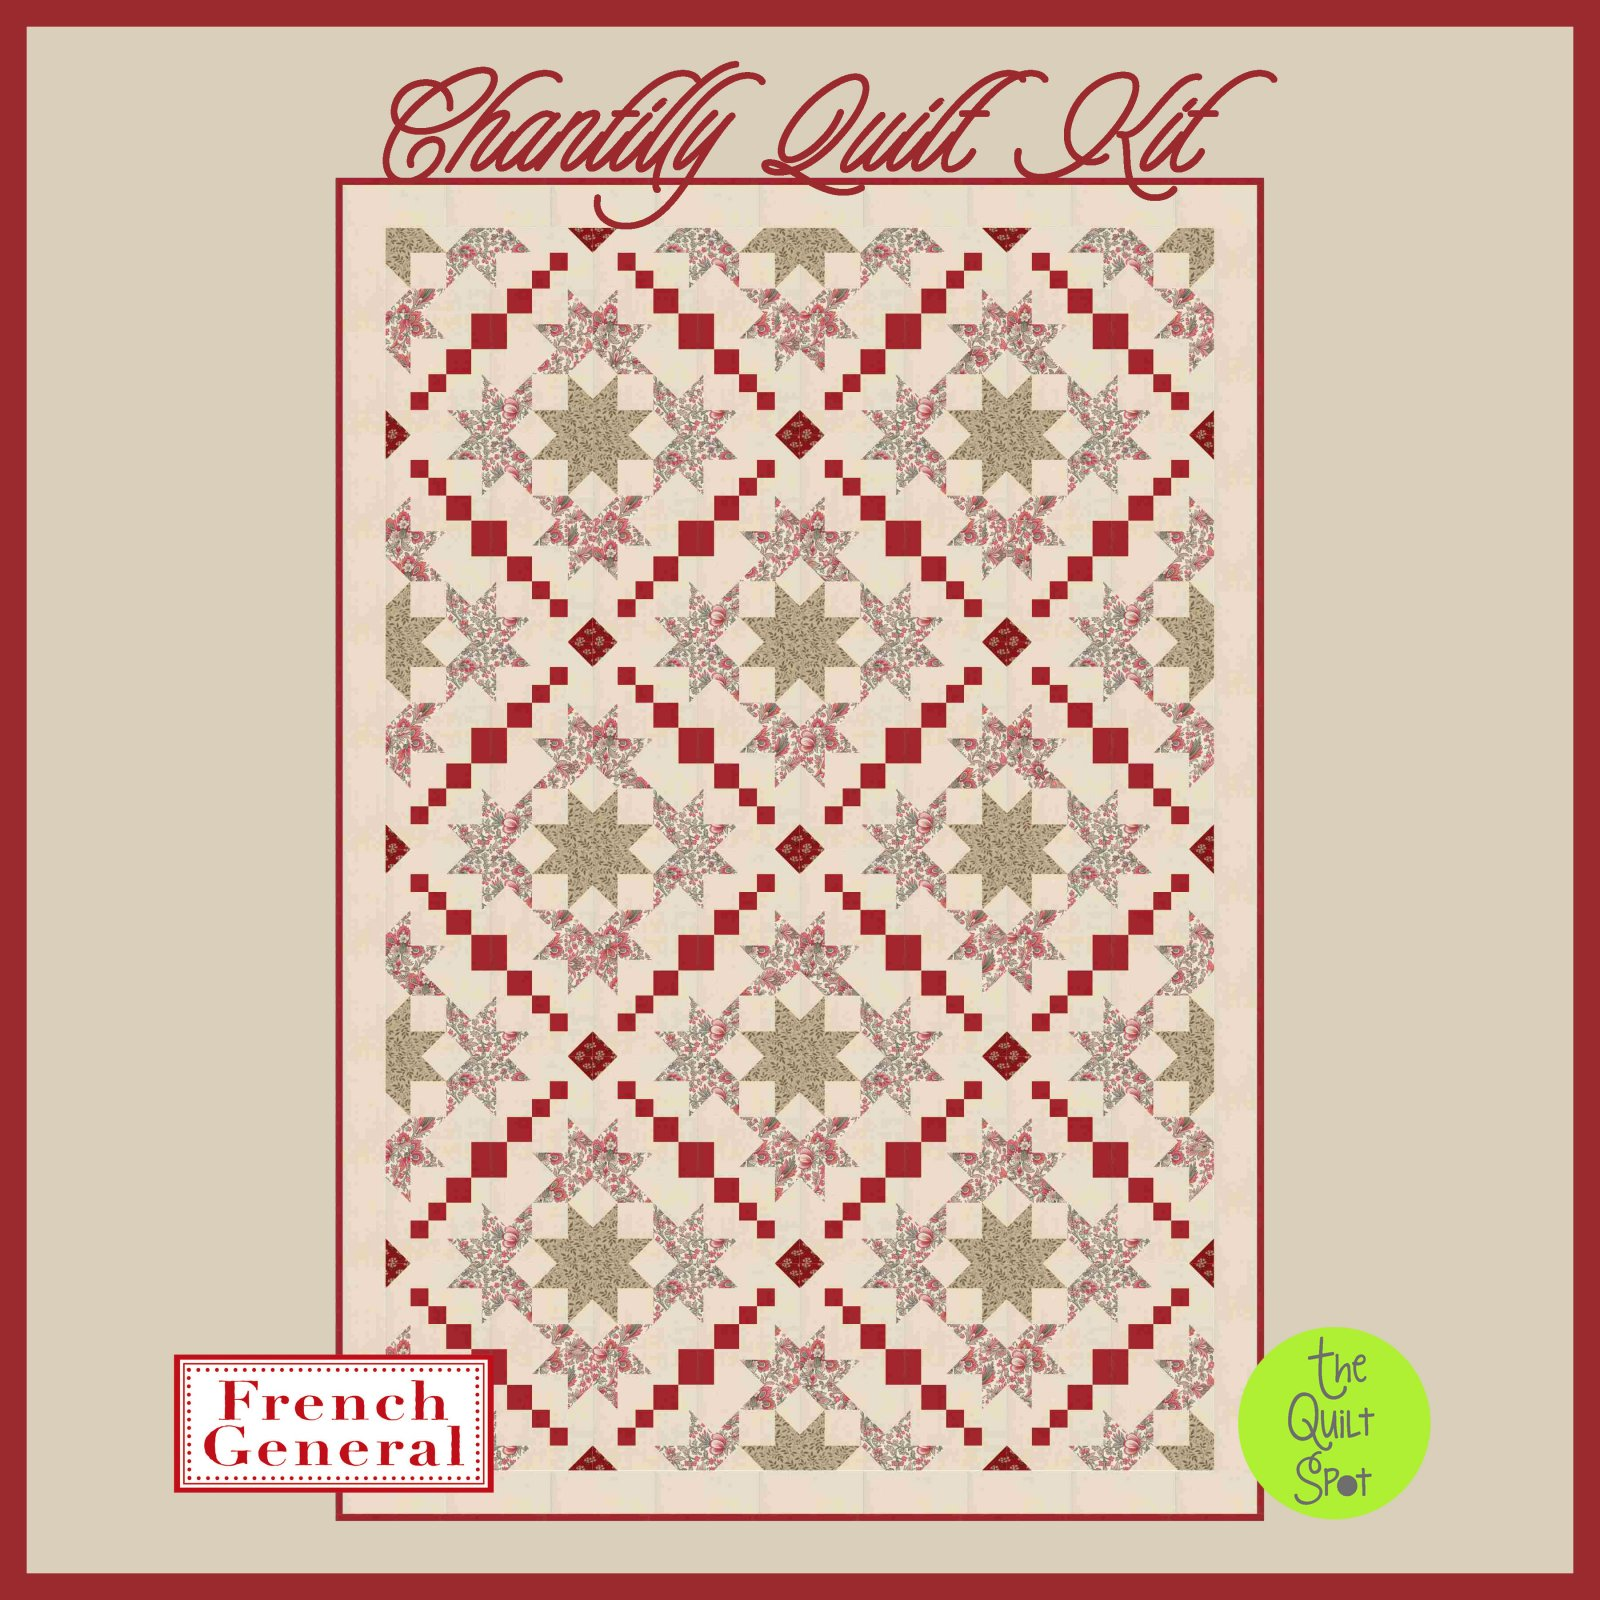 Chantilly Quilt Kit featuring French General